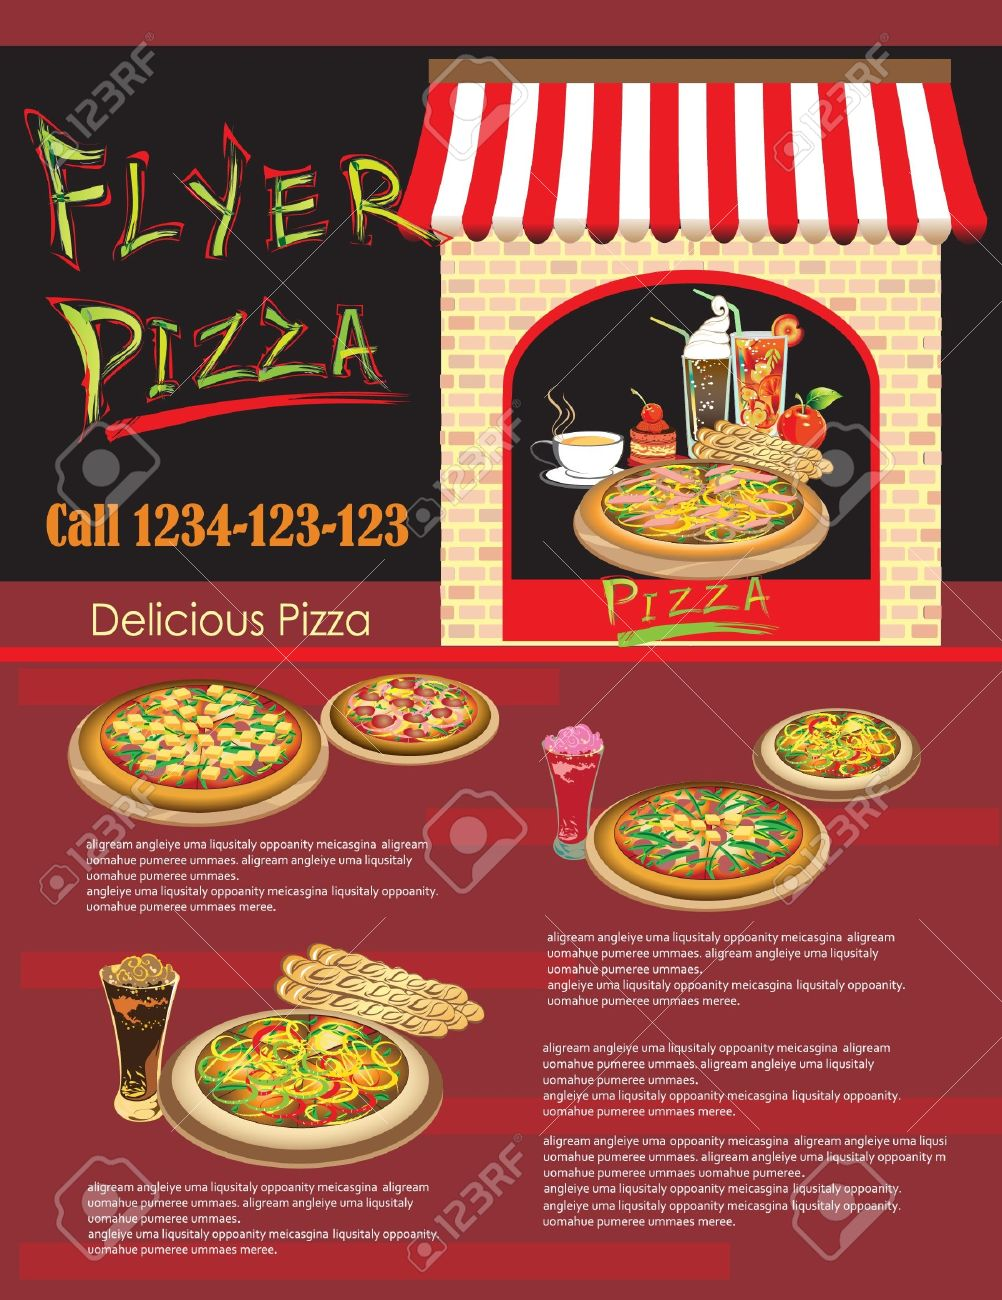 flyer pizza nede whyanything co